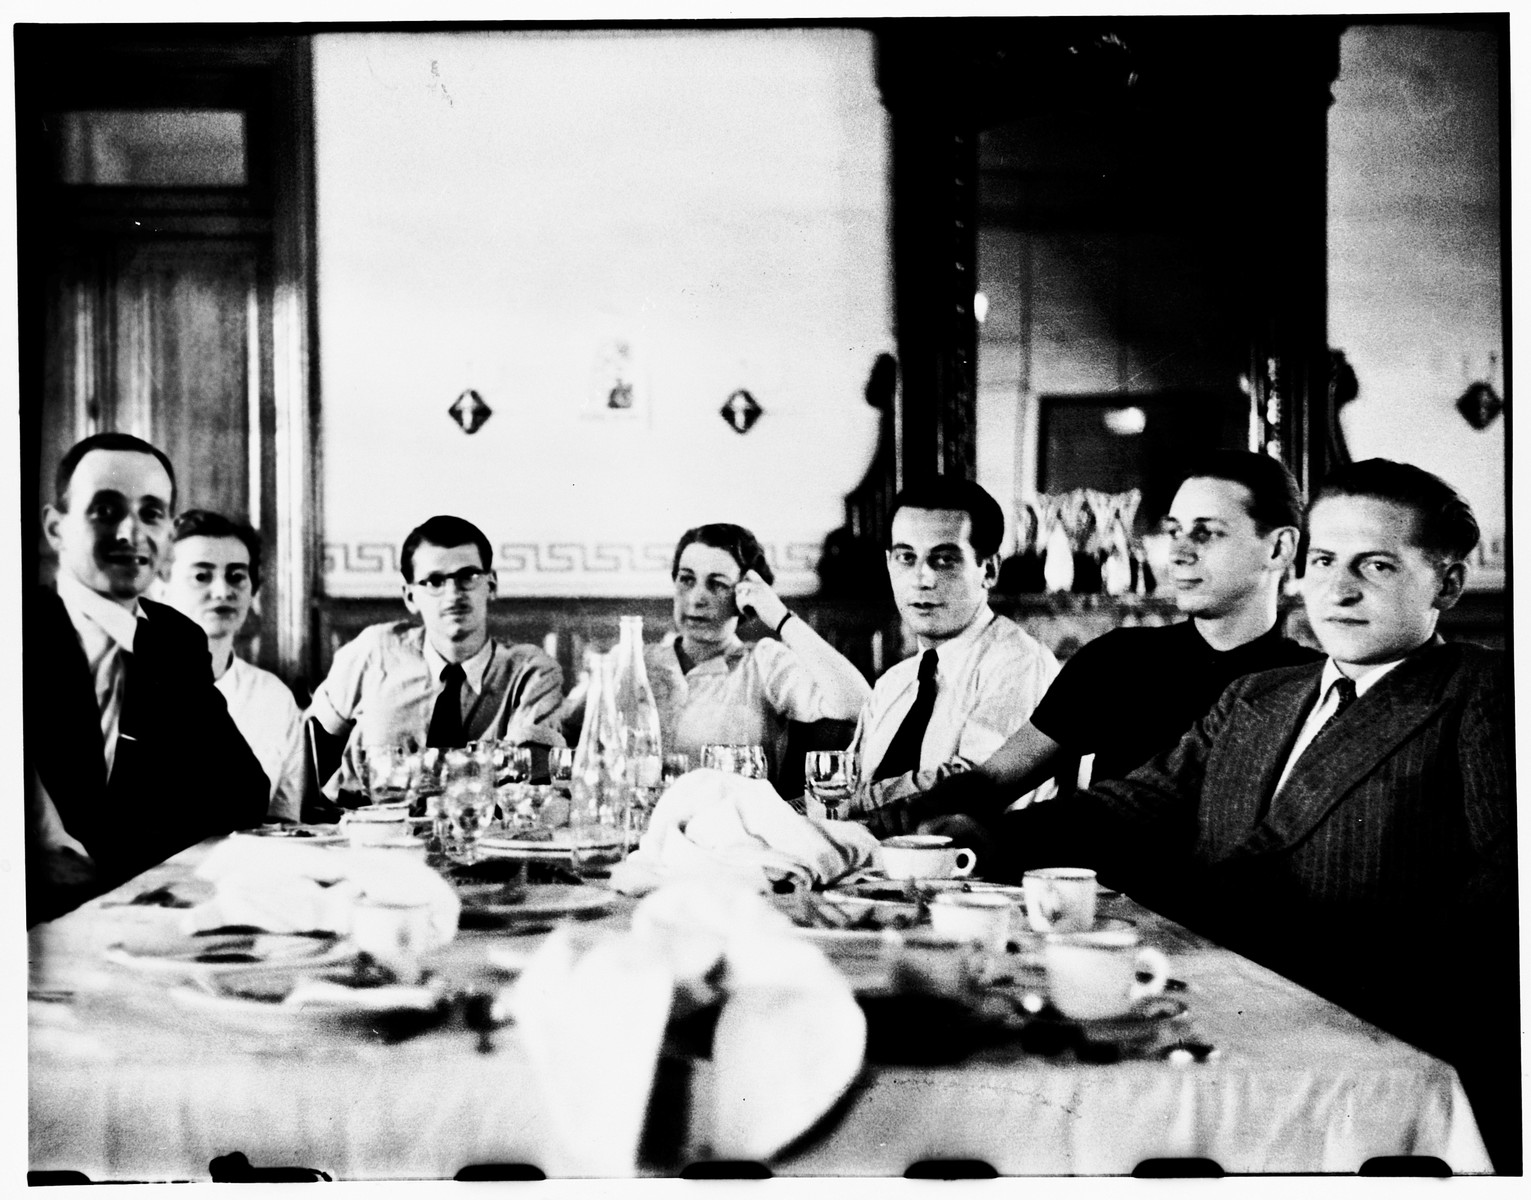 Members of the Centre Americain de Secours attend a farewell dinner at the Cerbere train station.  Seated from left to right are Jacques Weisslitz, Theodora Ungemacht Benedite, Daniel Benedite, Lucie Heymann, Louis Coppermann, Marcel Verzeanu, and Jean Gemahling.